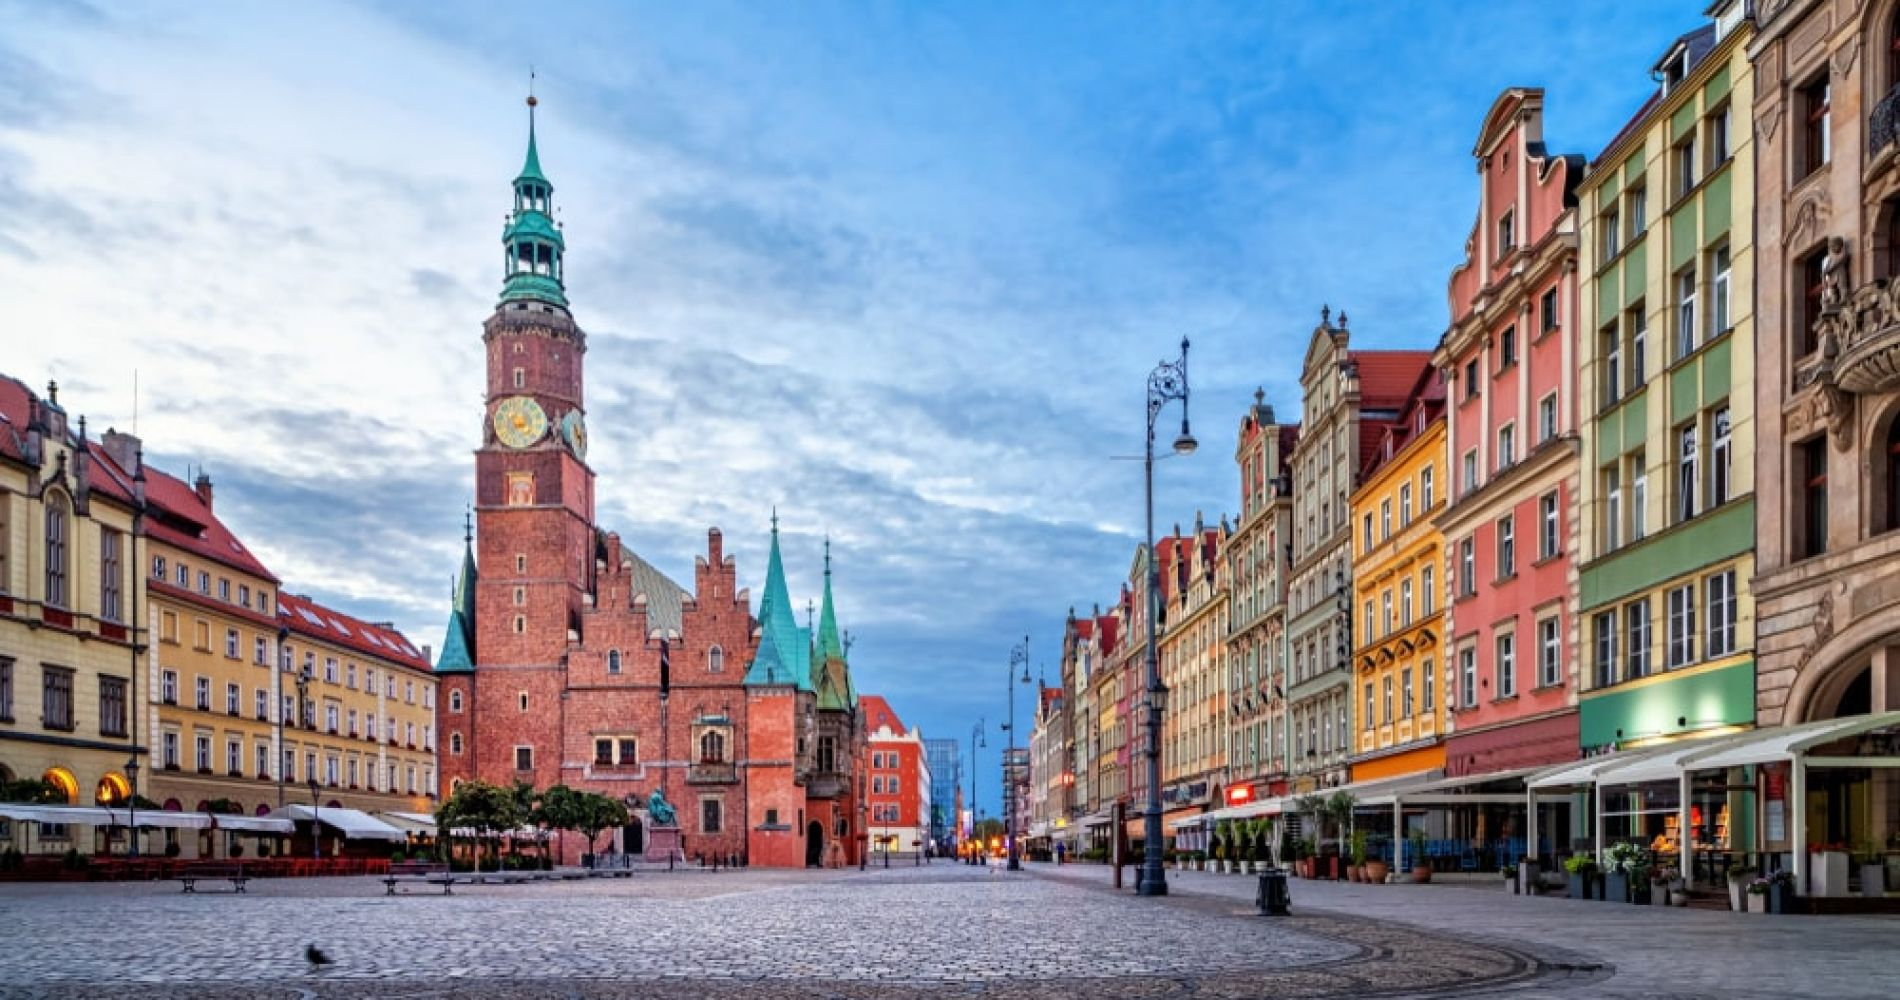 Visit the Market Square of Wroclaw